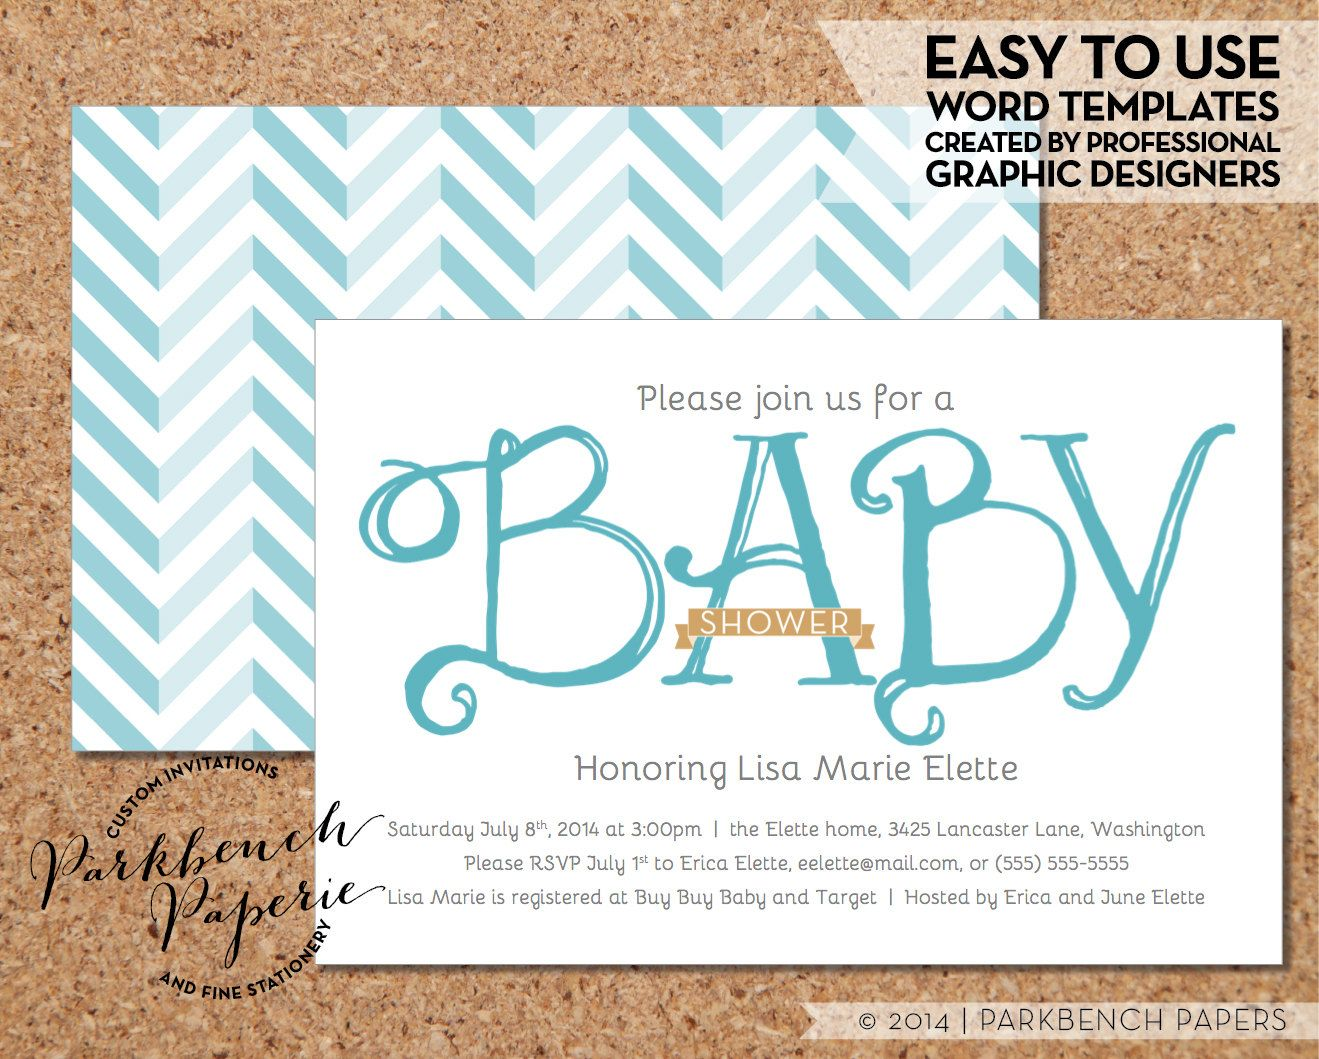 Baby Shower Invitations For Word Templates Amazing Baby Shower Invitation  Blue Ribbon  Diy Editable Word Template .